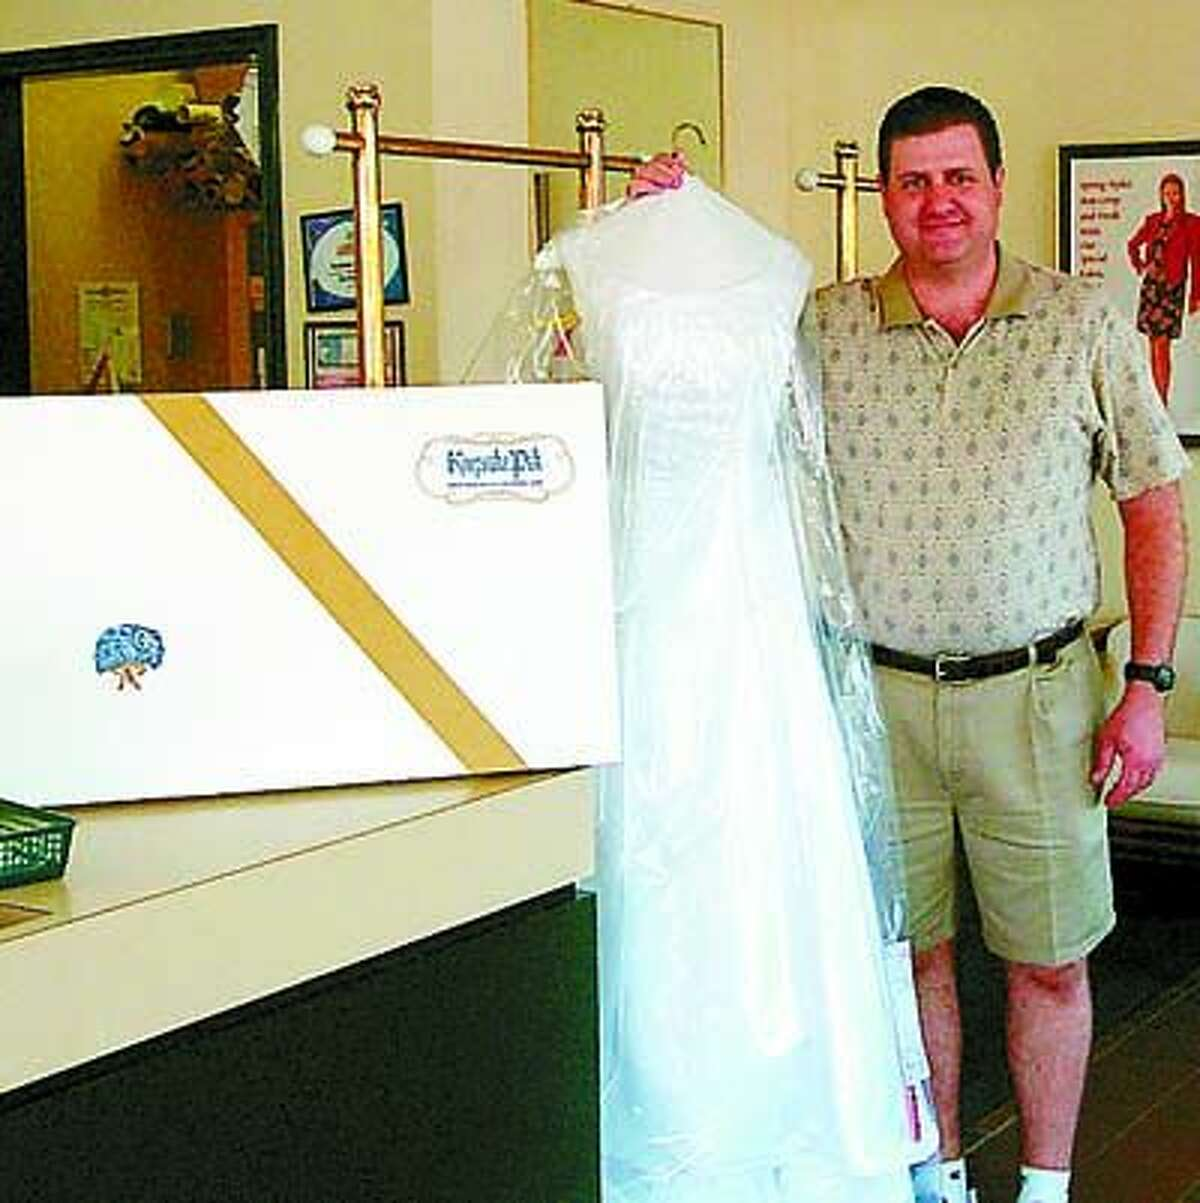 Preserve your memories by letting Fashion Cleaners heirloom your wedding gown.